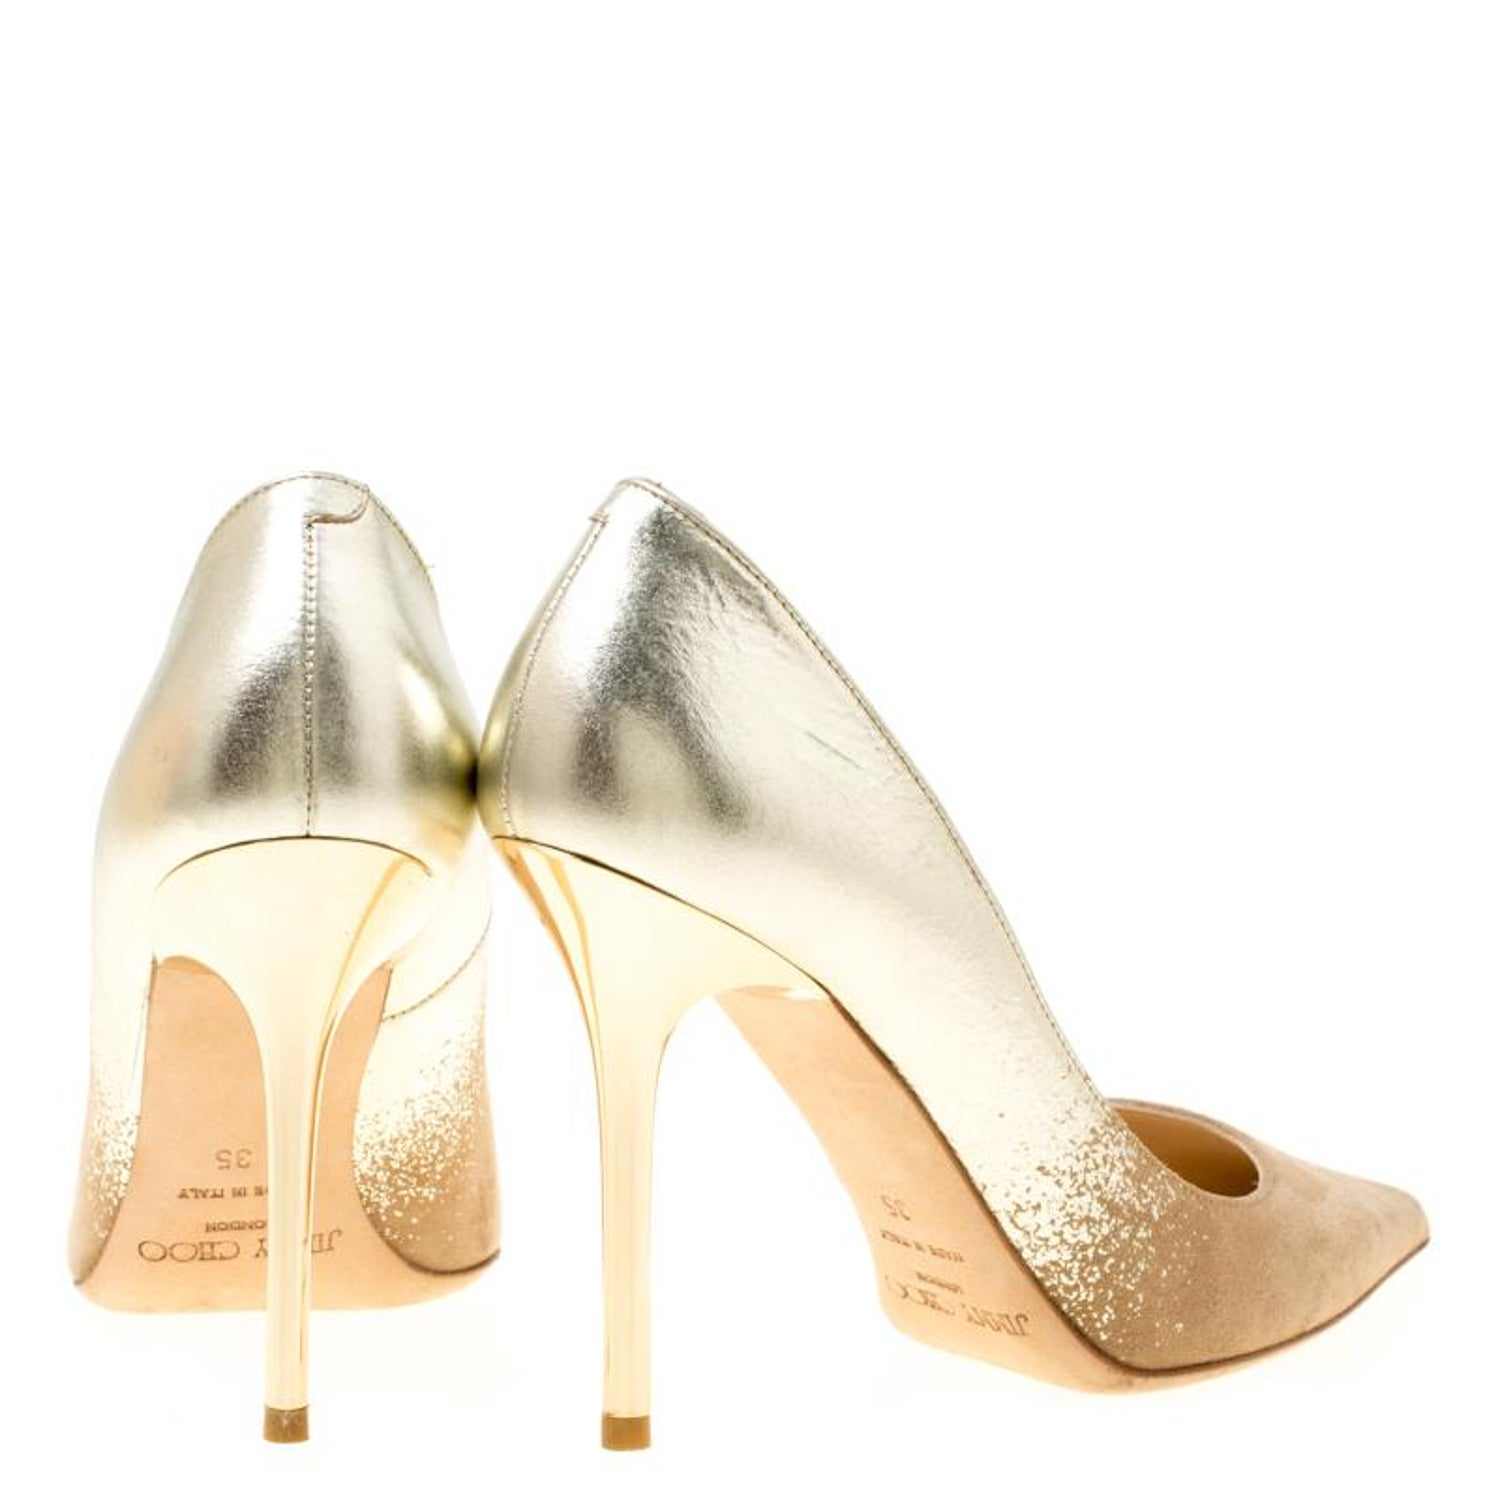 15810359e7fe2 Jimmy Choo Beige Suede and Gold Dégradé Decollete Pointed Toe Pumps Size 35  For Sale at 1stdibs